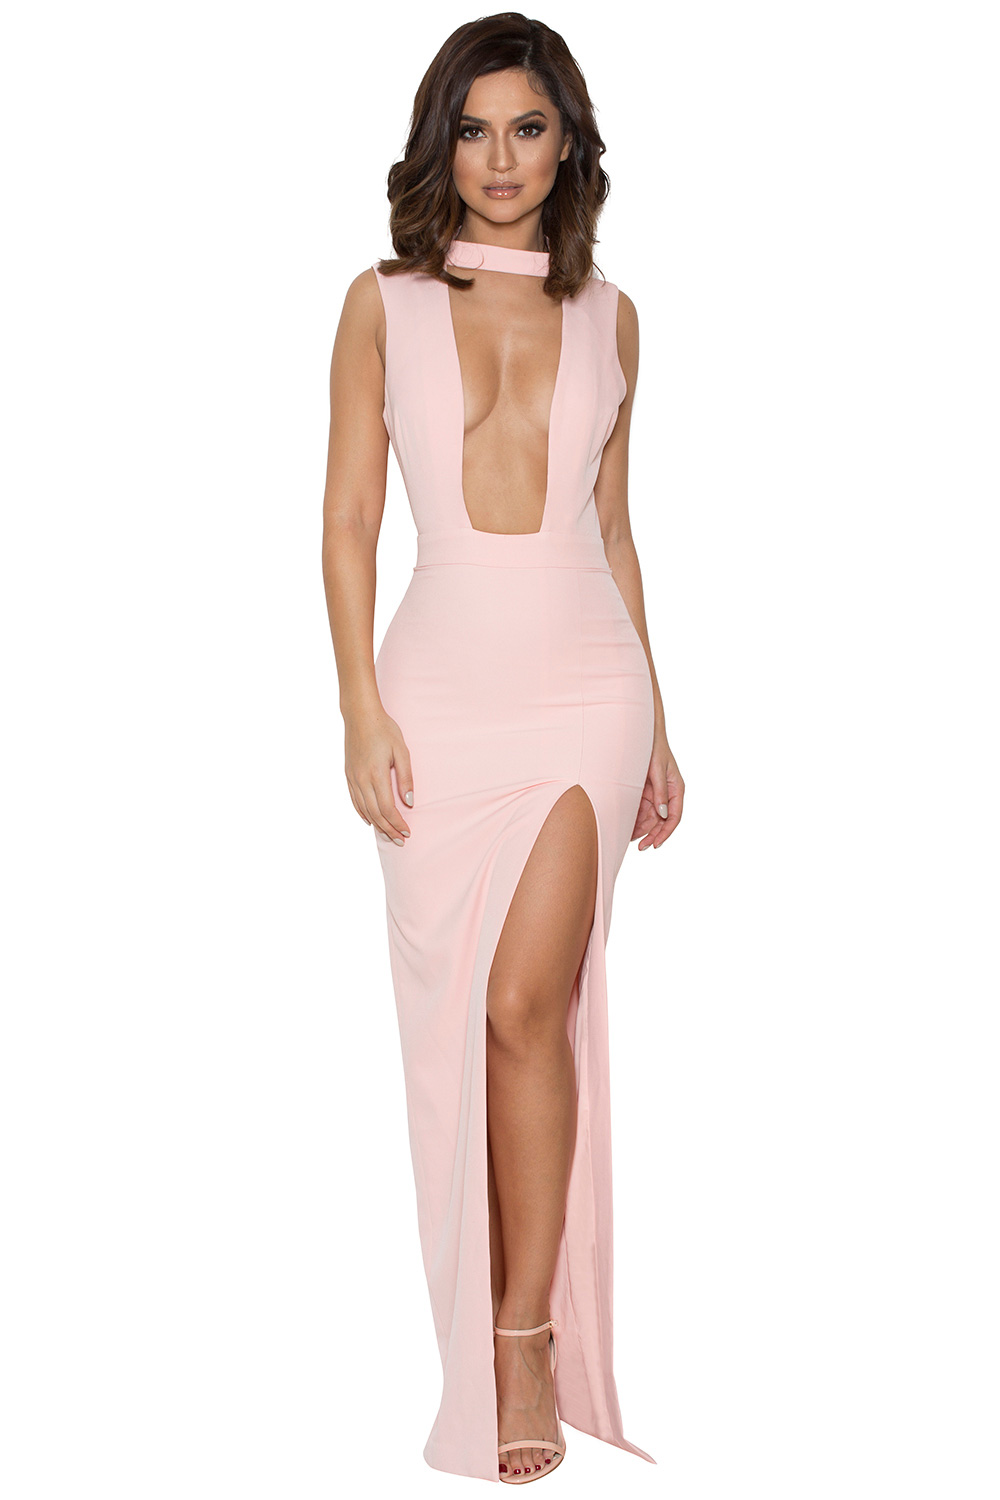 clothing max dresses 39 jehane 39 pale pink cut out maxi dress. Black Bedroom Furniture Sets. Home Design Ideas